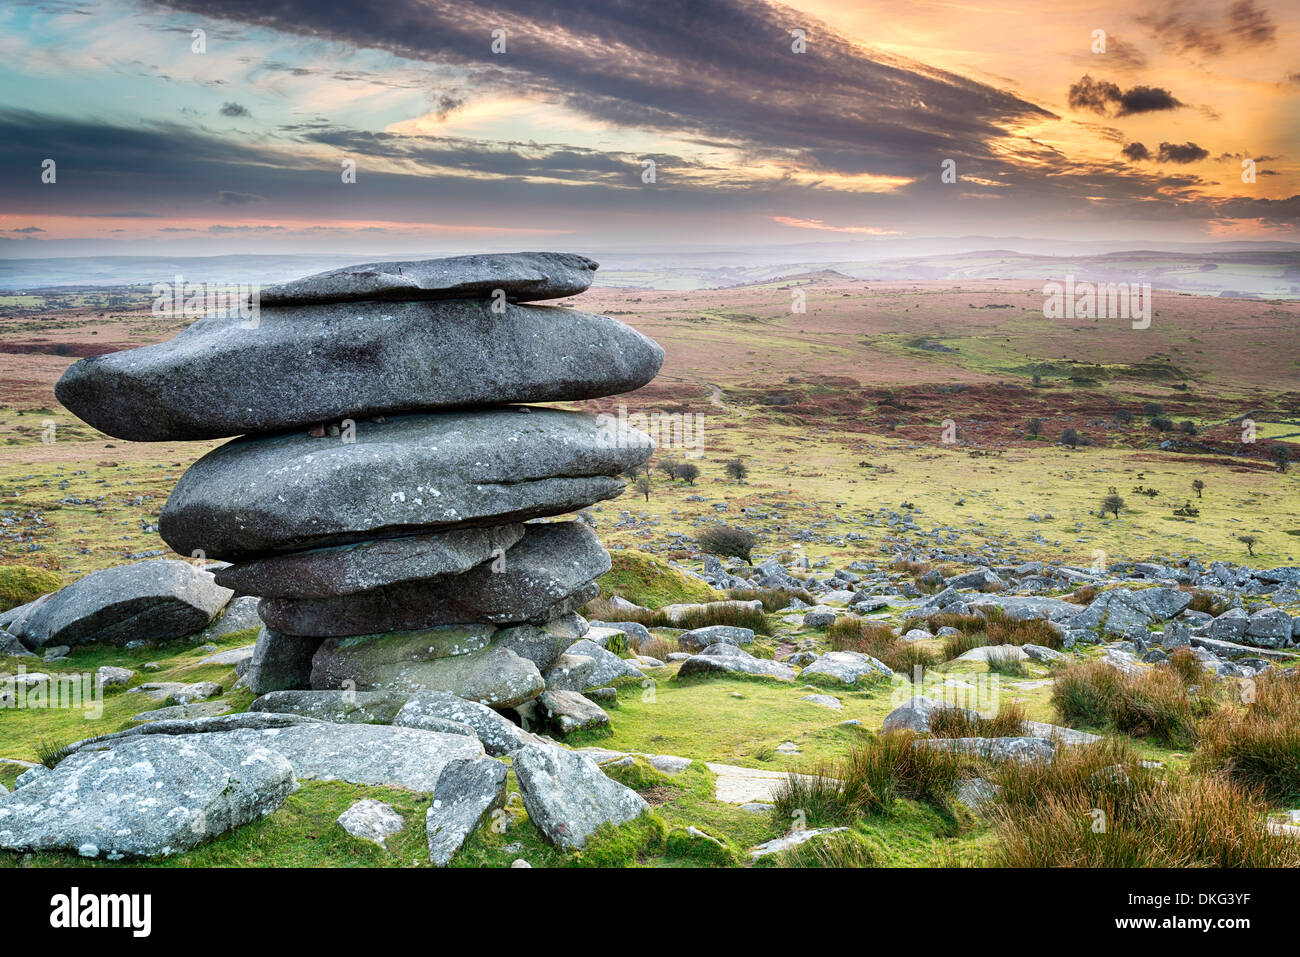 Sunset at the Cheesewring on Bodmin Moor in Cornwall, a weathered natural rock formation made up of precariously balanced granit - Stock Image